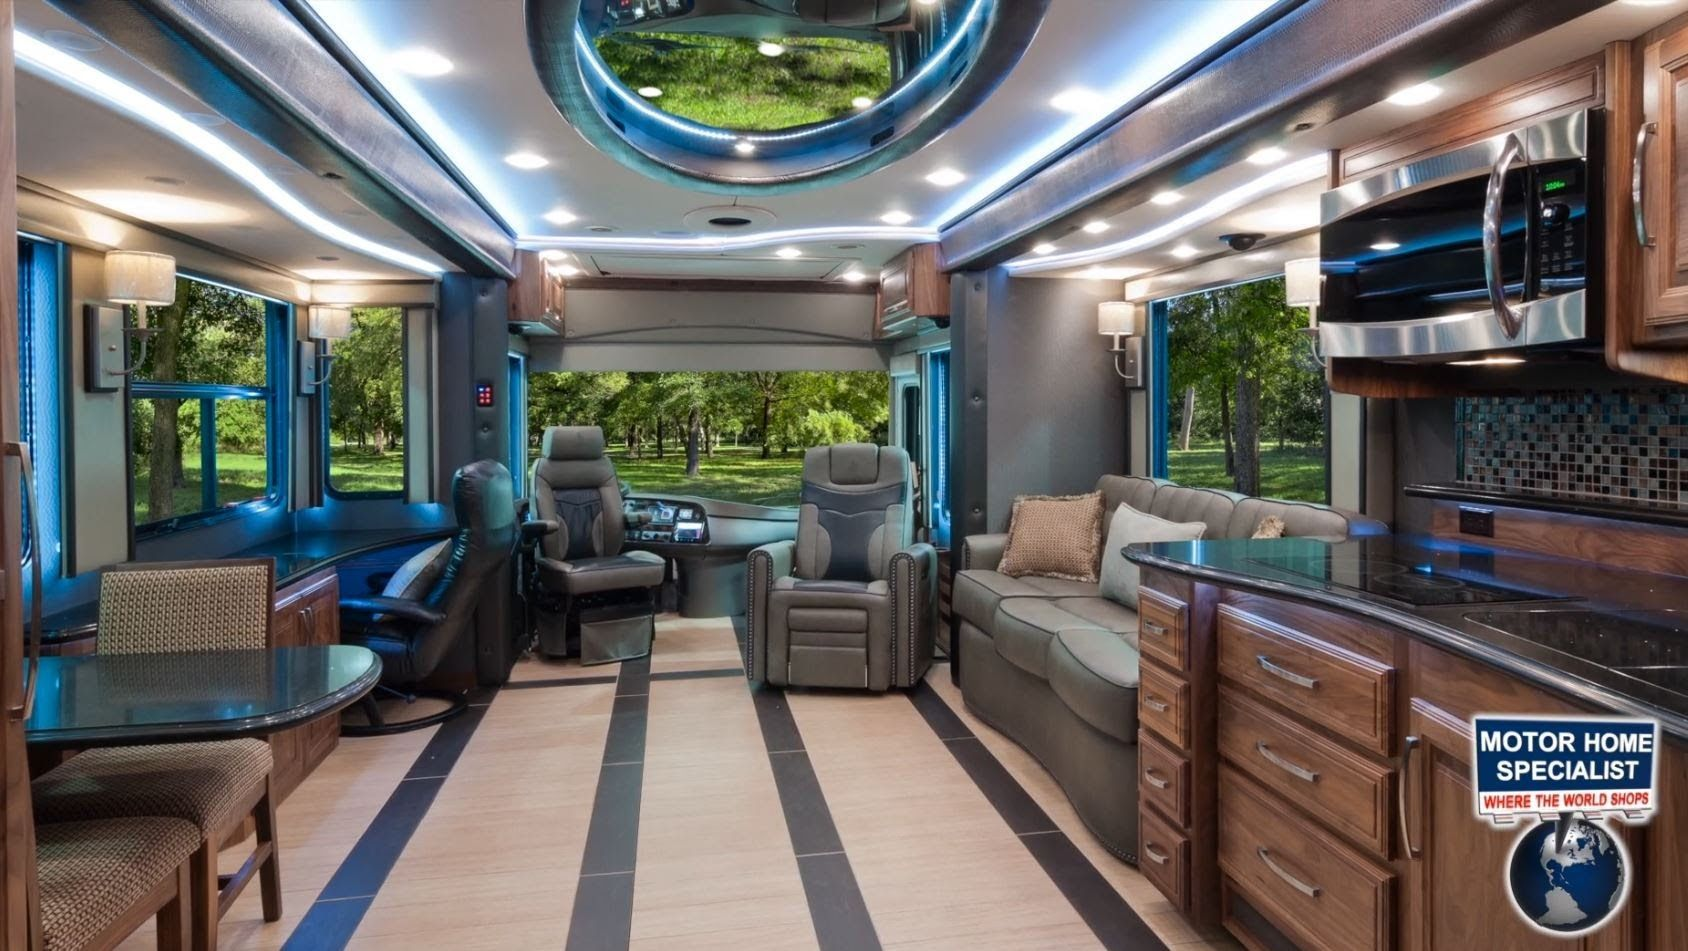 2014 Foretravel Ih45 Luxury RV Review At MHSRV